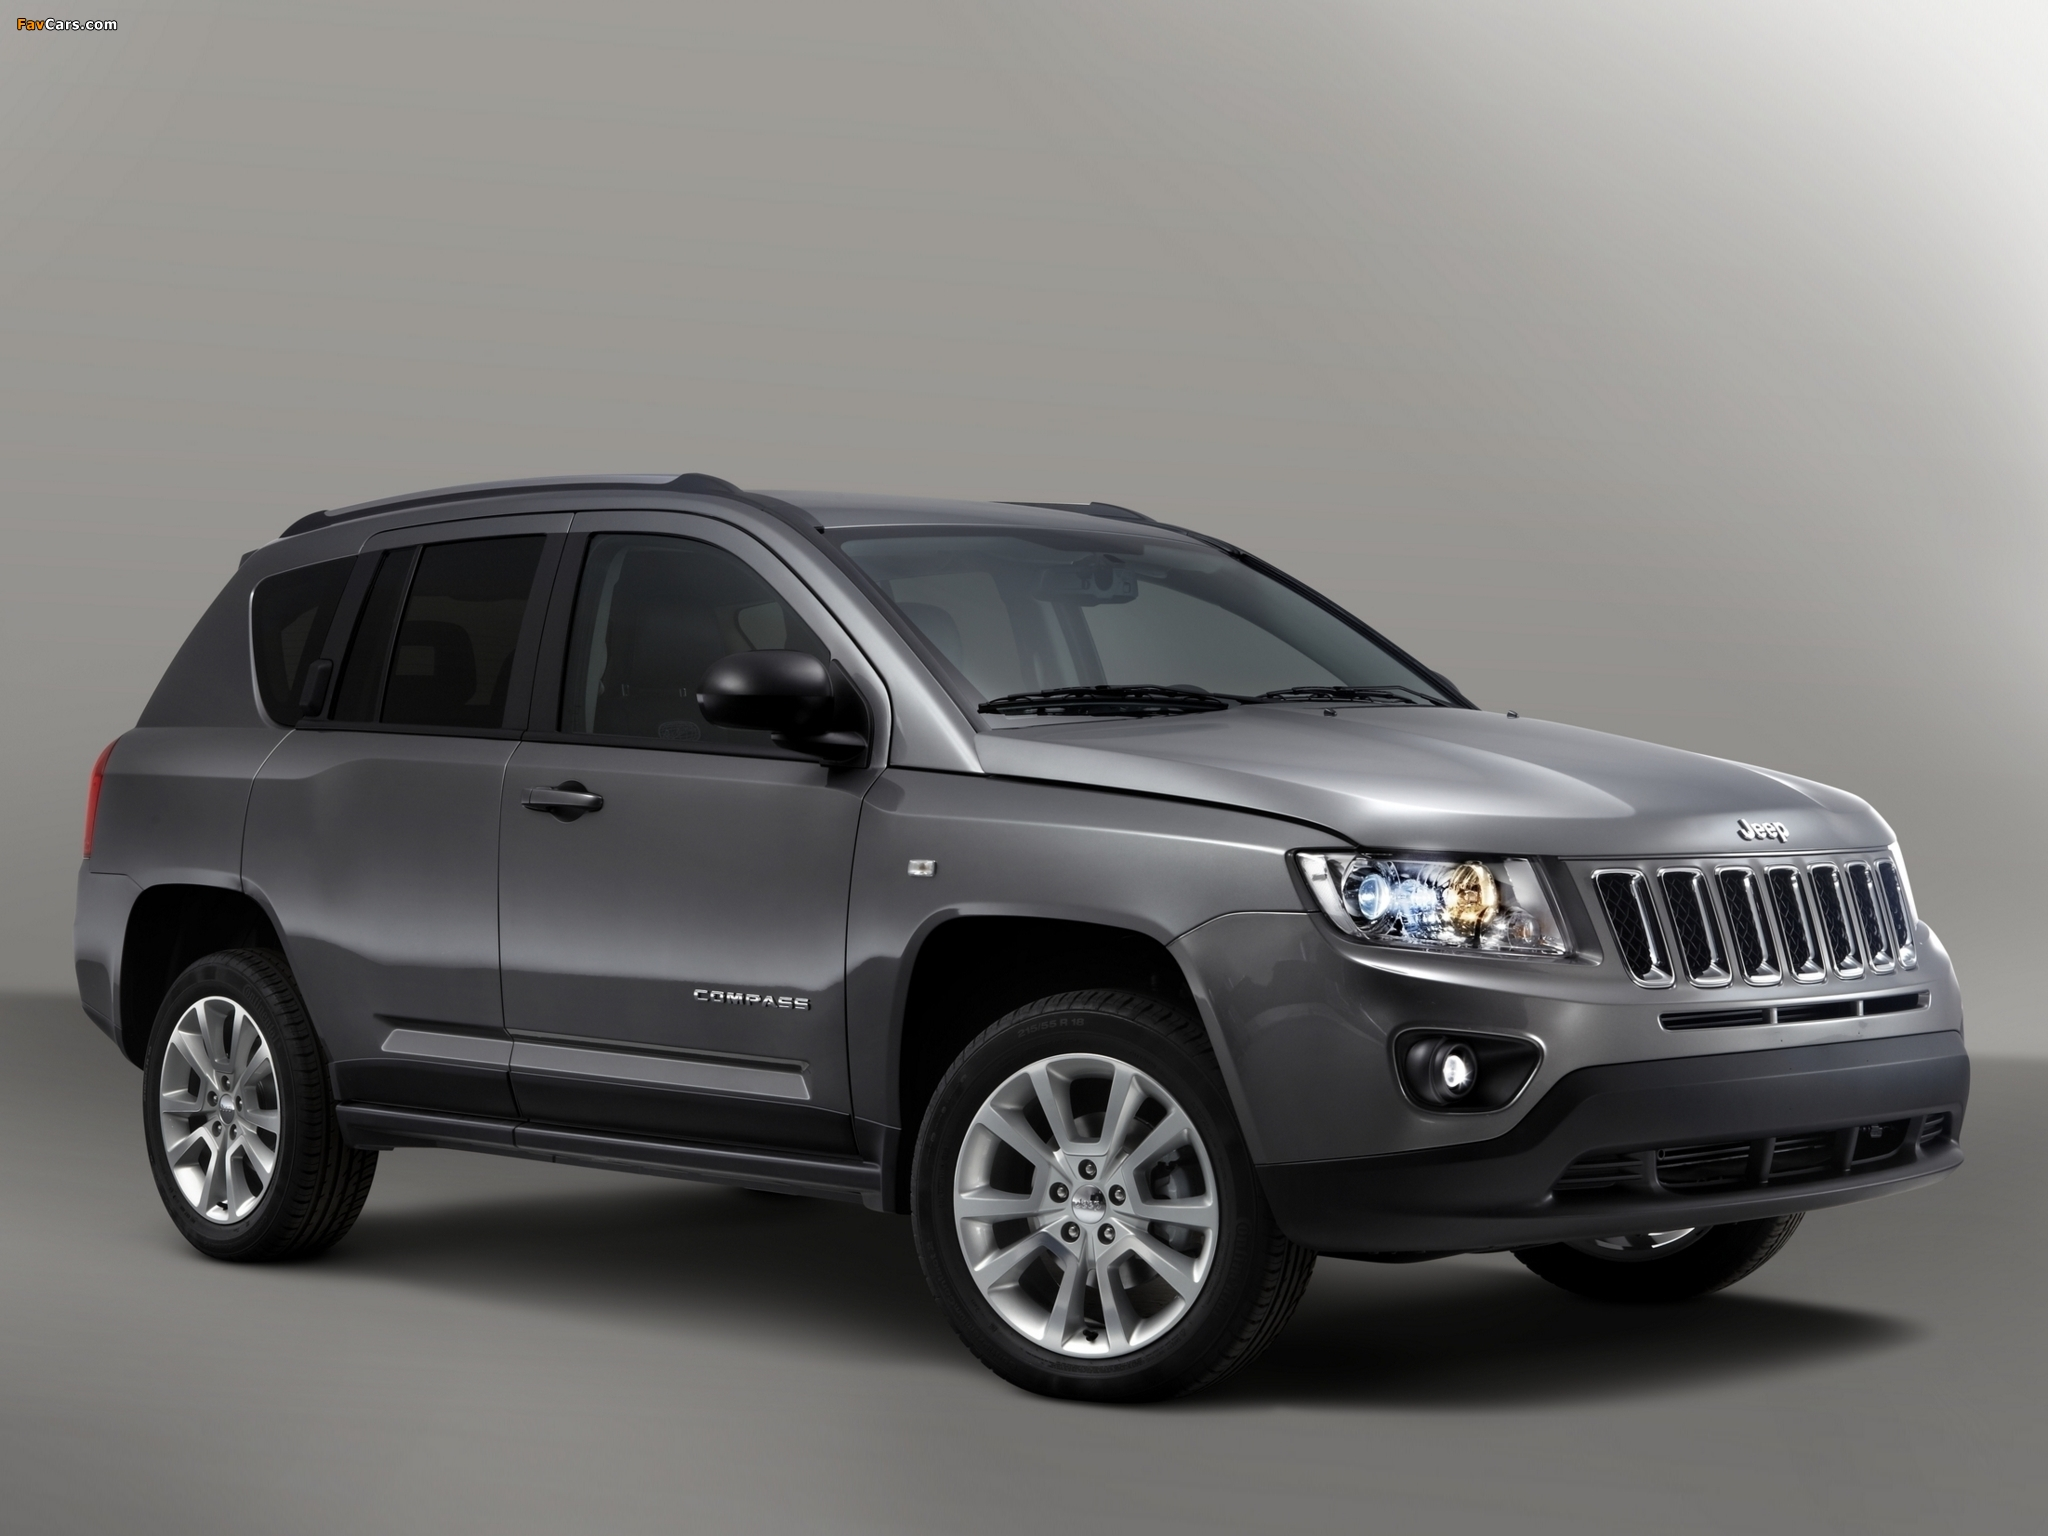 Jeep Compass Overland 2012 images (2048 x 1536)